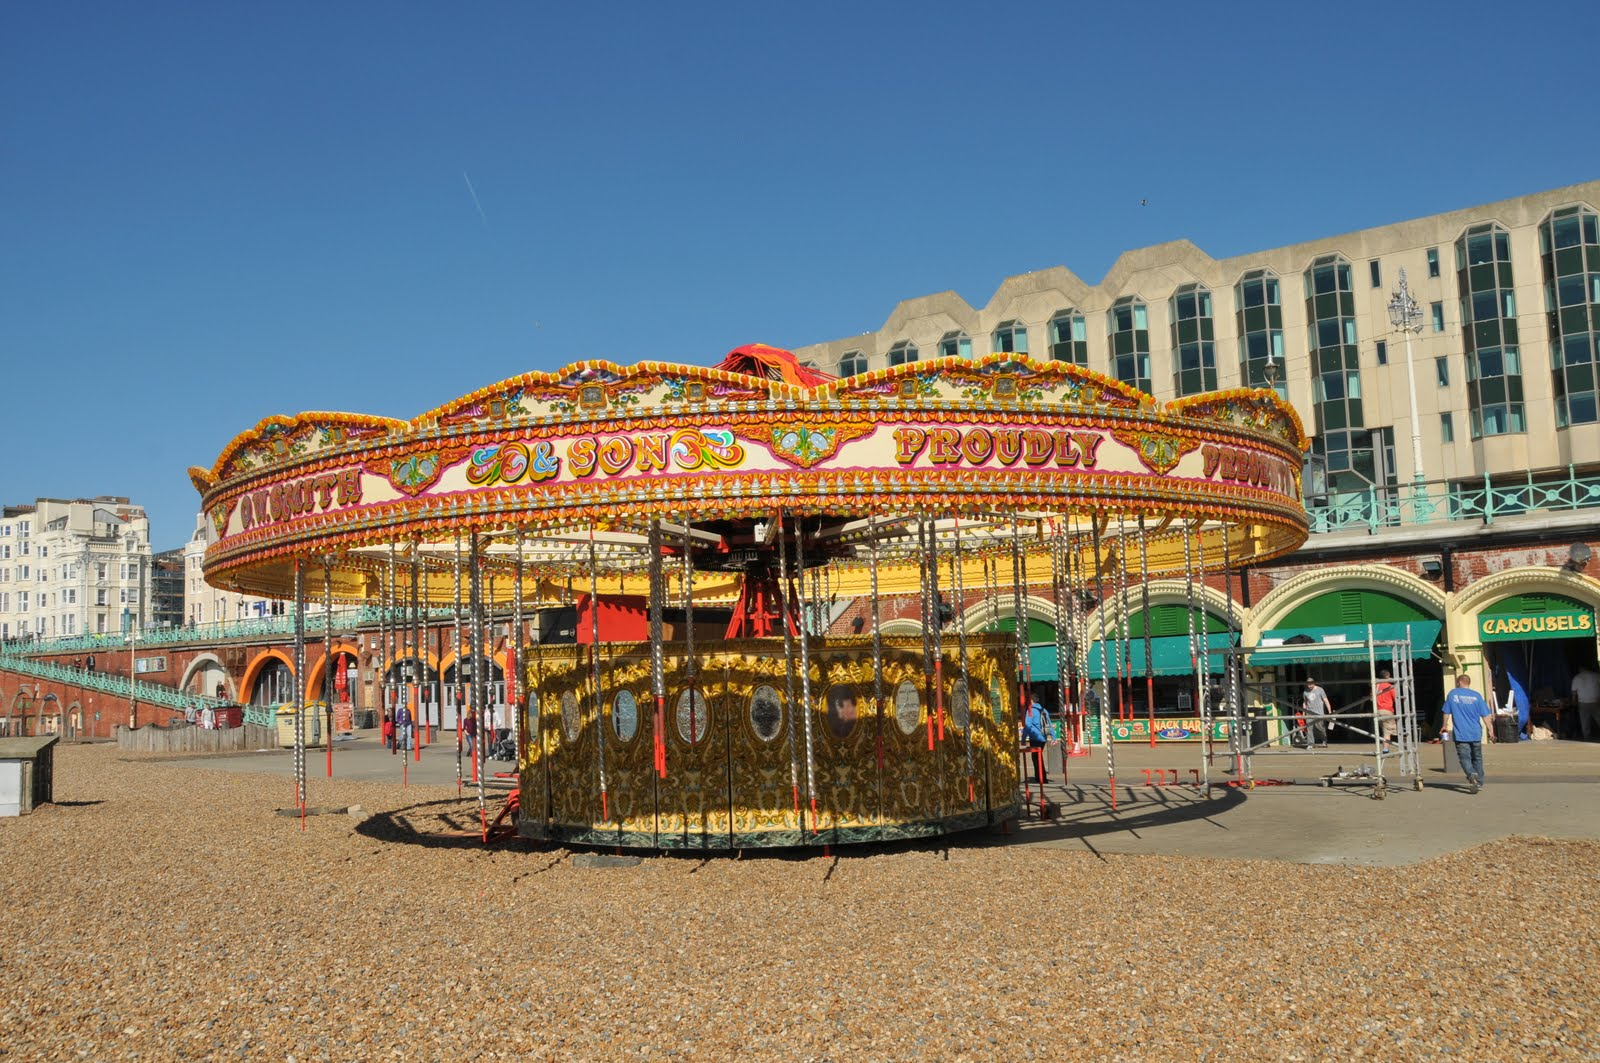 Golden Gallopers Carousel | Seafront attractions | My Brighton and Hove